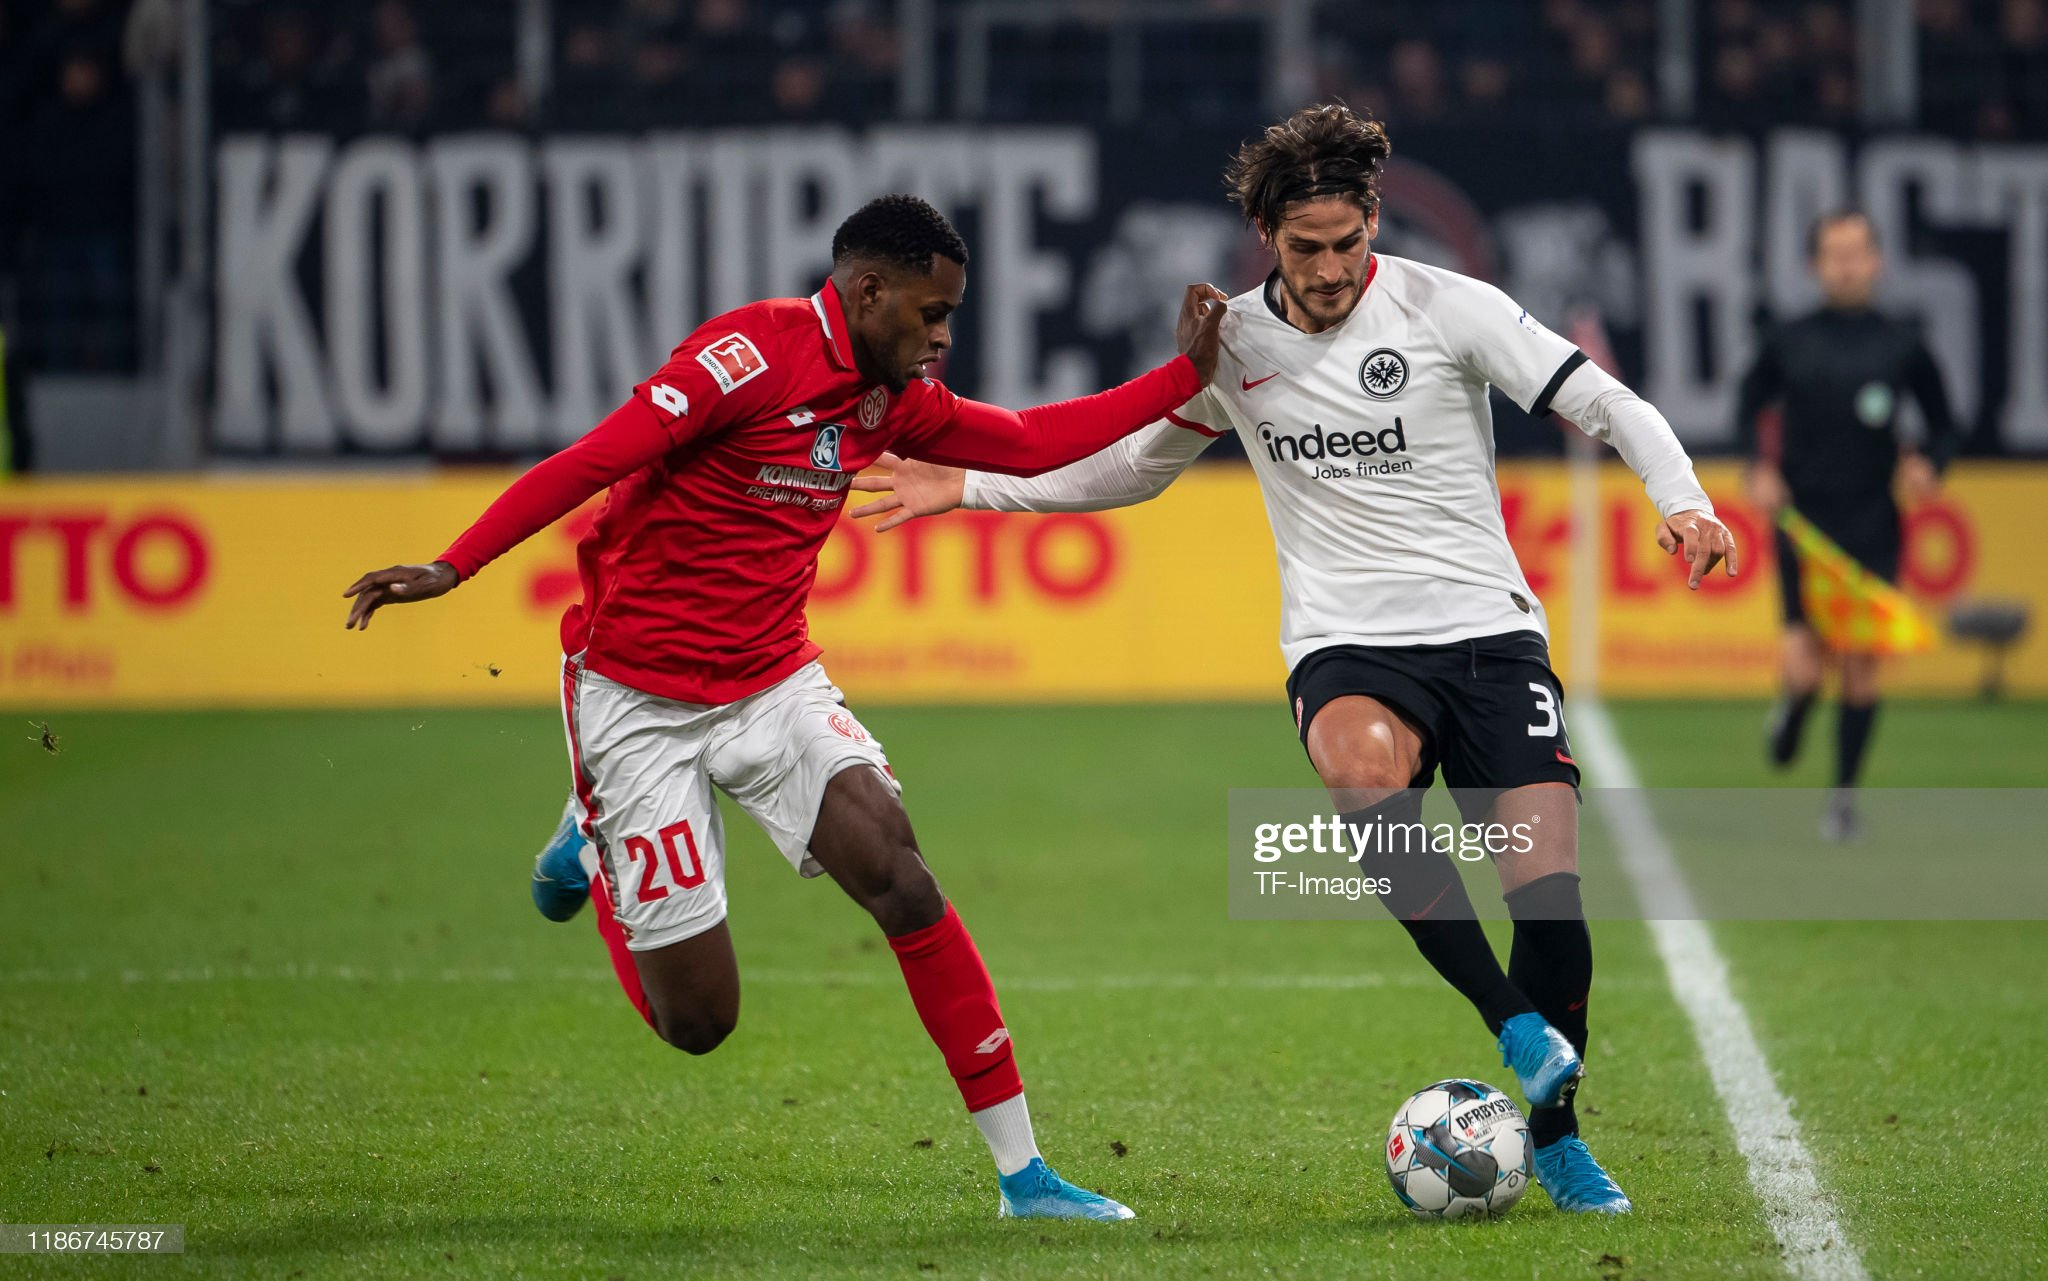 Eintracht Frankfurt vs Mainz Preview, prediction and odds